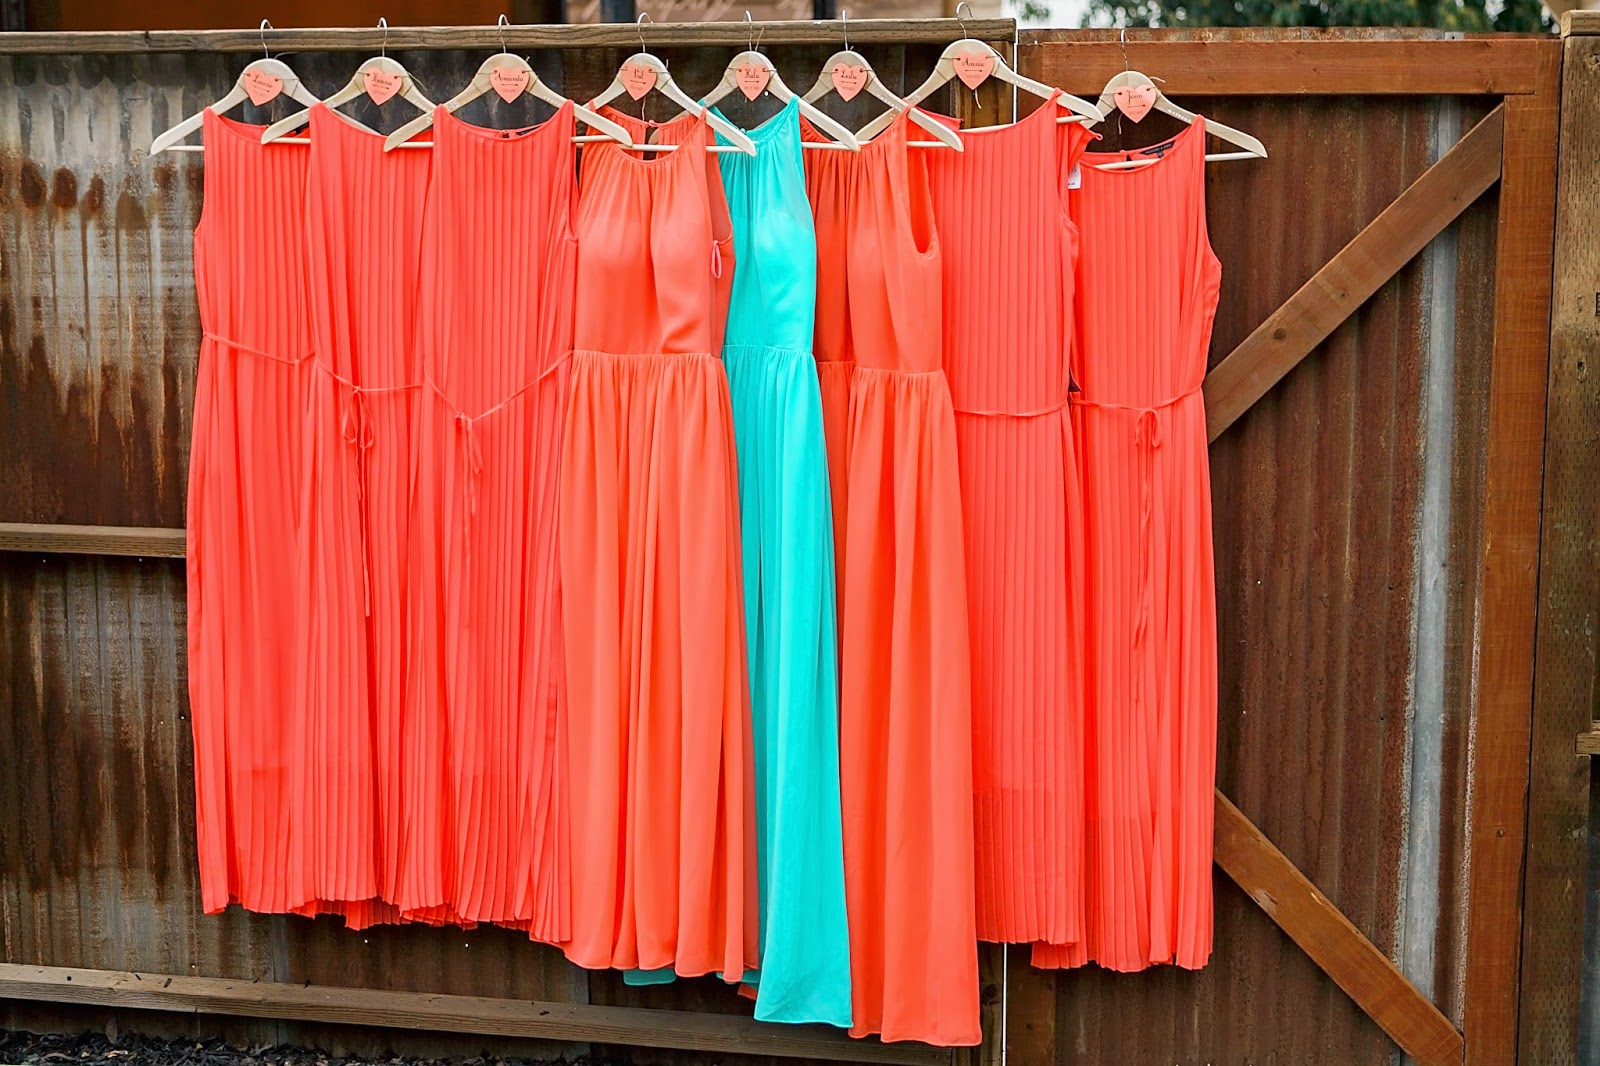 vista ranch and cellars, vista merced, vista ranch merced, bridal house at vista ranch, garden wedding, spring outdoor wedding, diy spring wedding, coral and turquoise bridesmaid dresses, coral bridesmaid dress, teal bridesmaid dress, simple bridesmaid dress, long bridesmaid dress